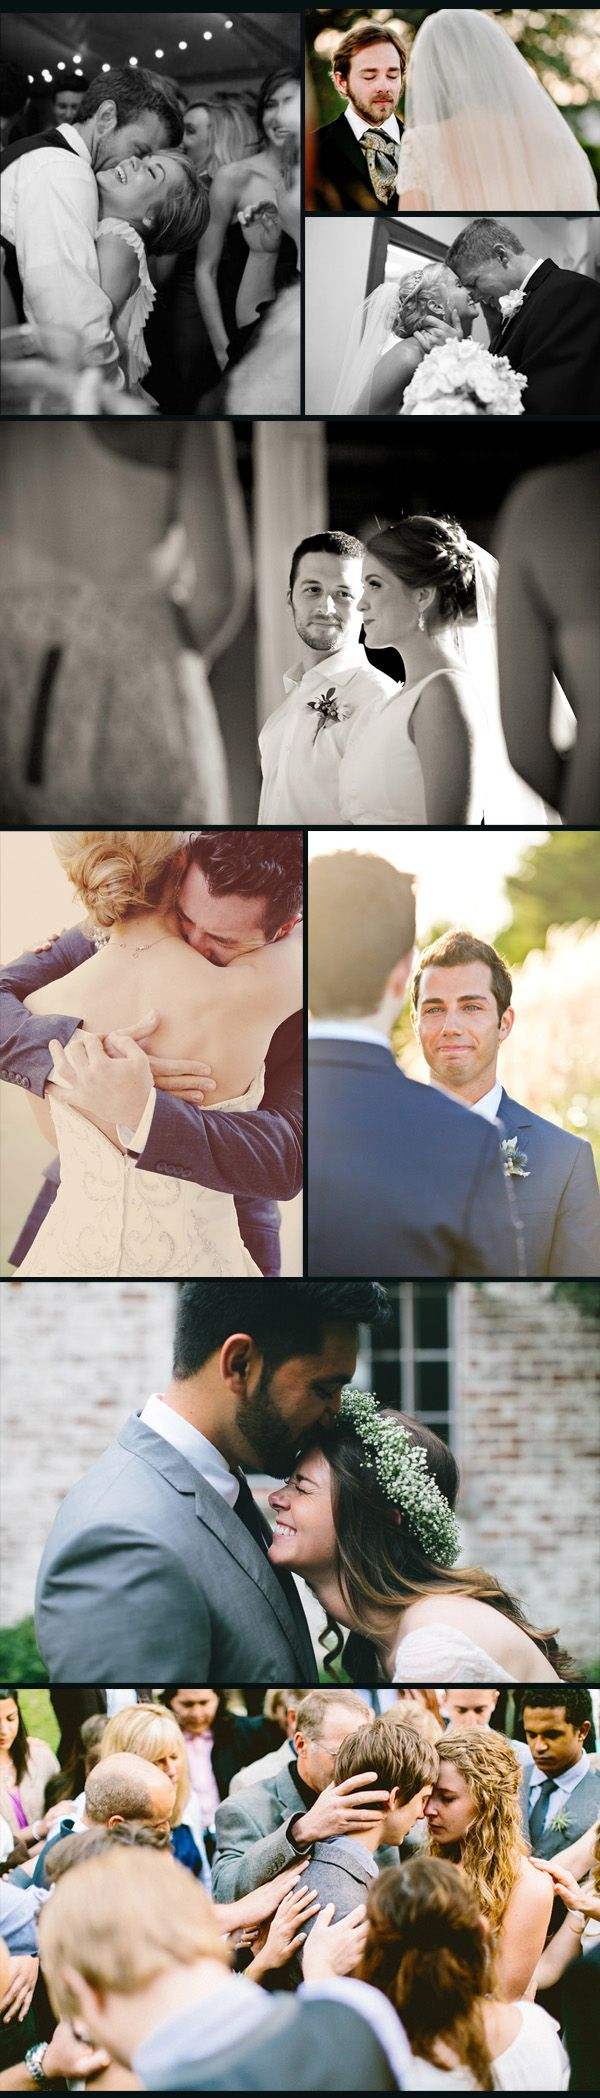 most emotional moments of brides and grooms in real weddings